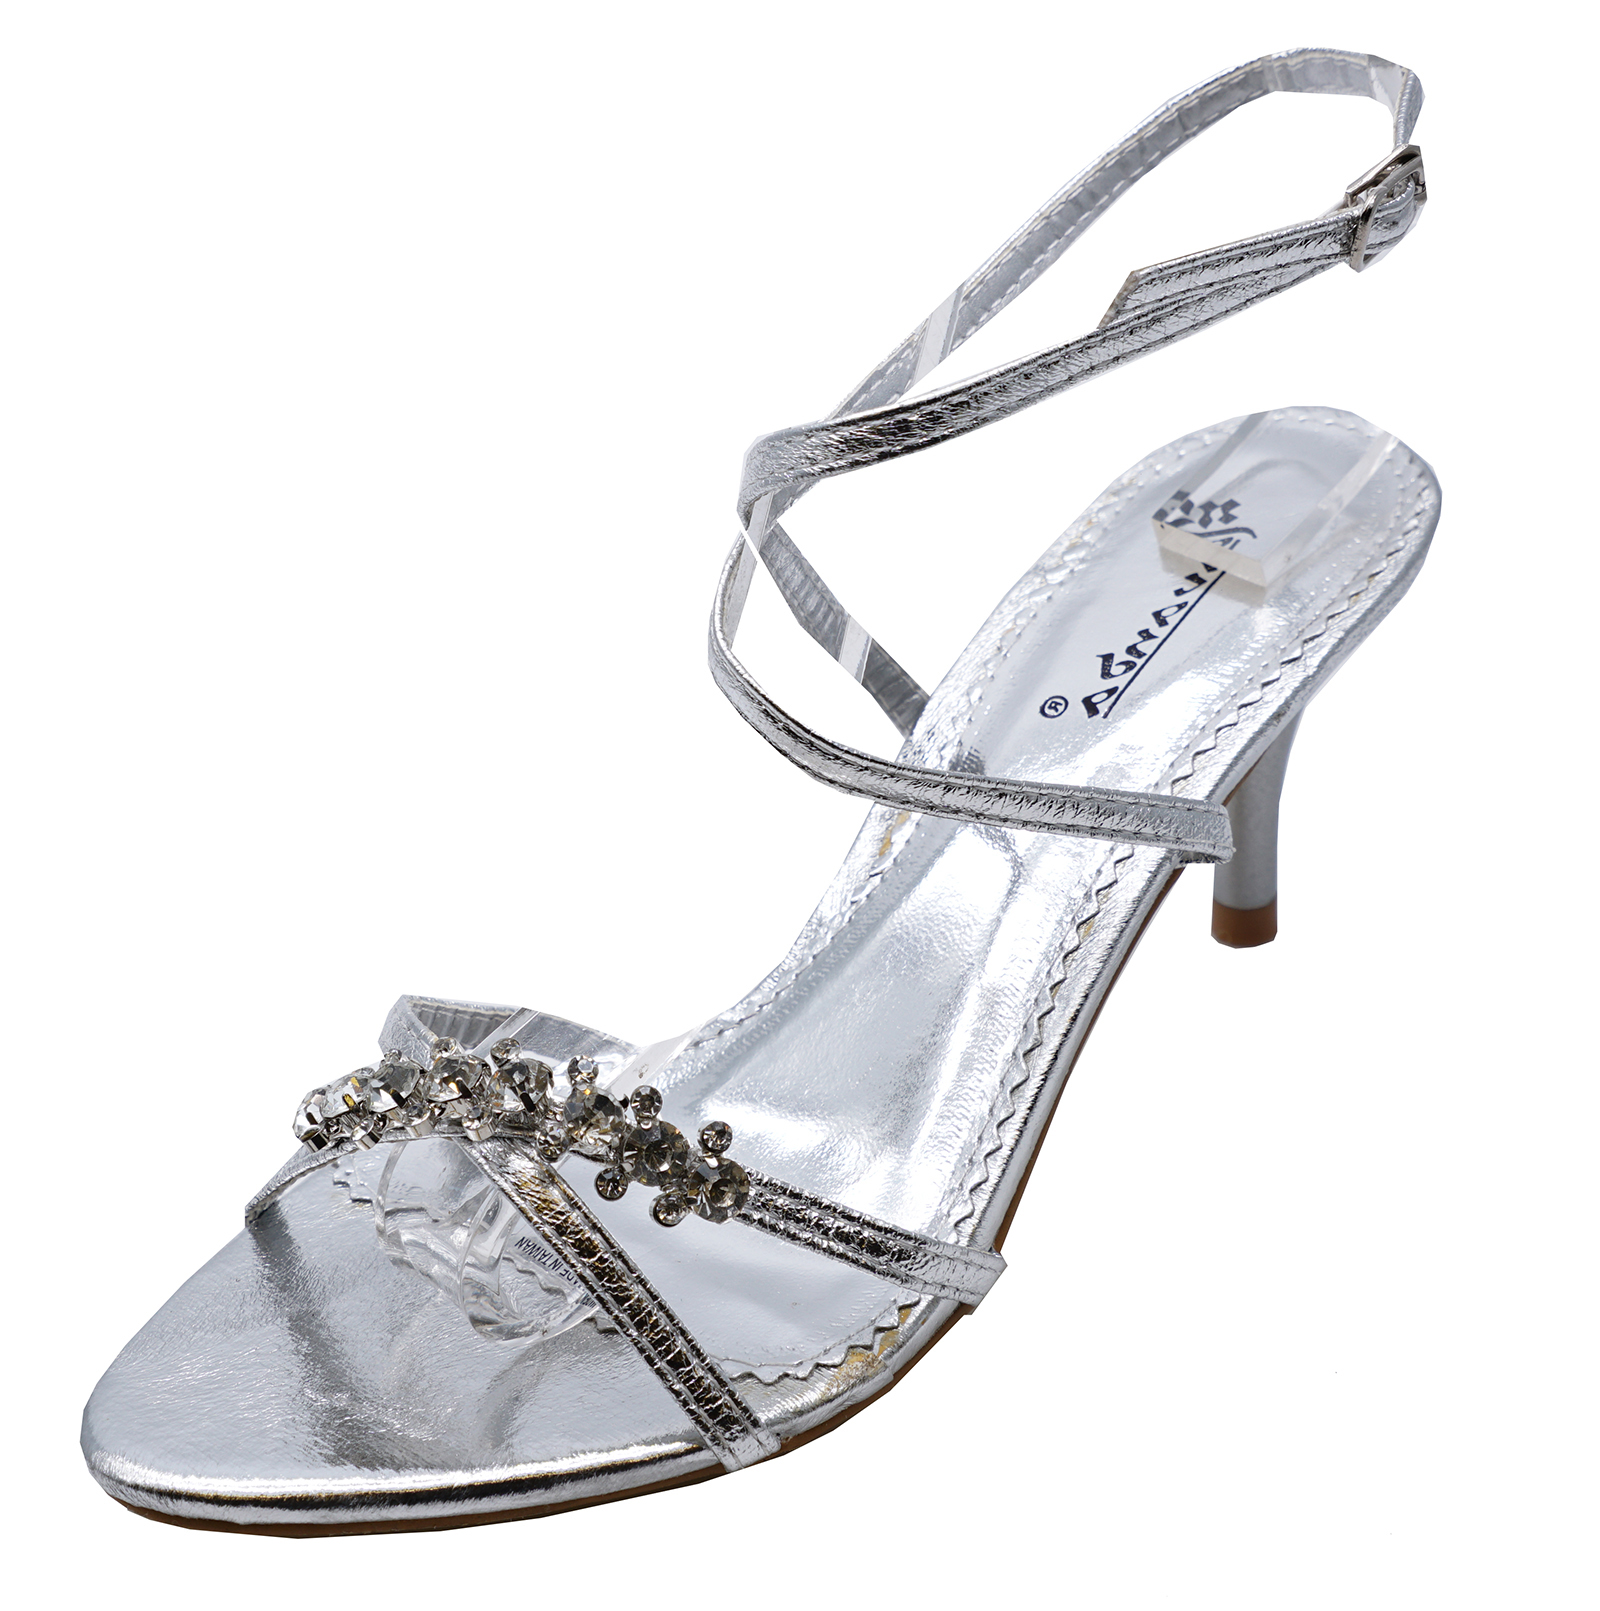 ff2409e37 Sentinel LADIES SILVER KITTEN HEEL STRAPPY EVENING DIAMANTE ELEGANT SANDALS  SHOES UK 3-8